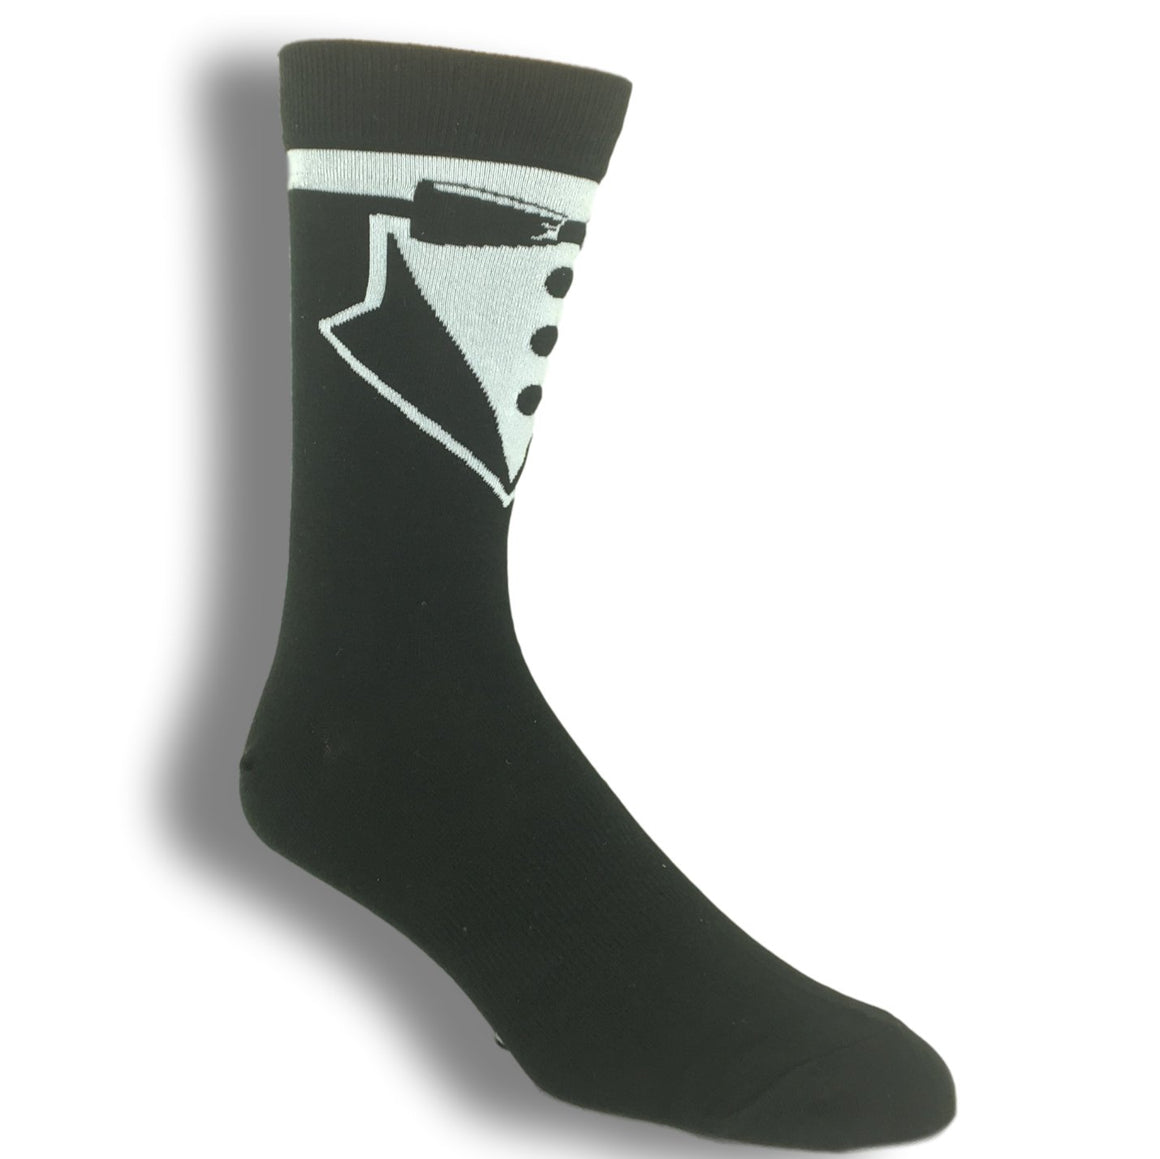 Fancy Tuxedo Socks by K.Bell - The Sock Spot